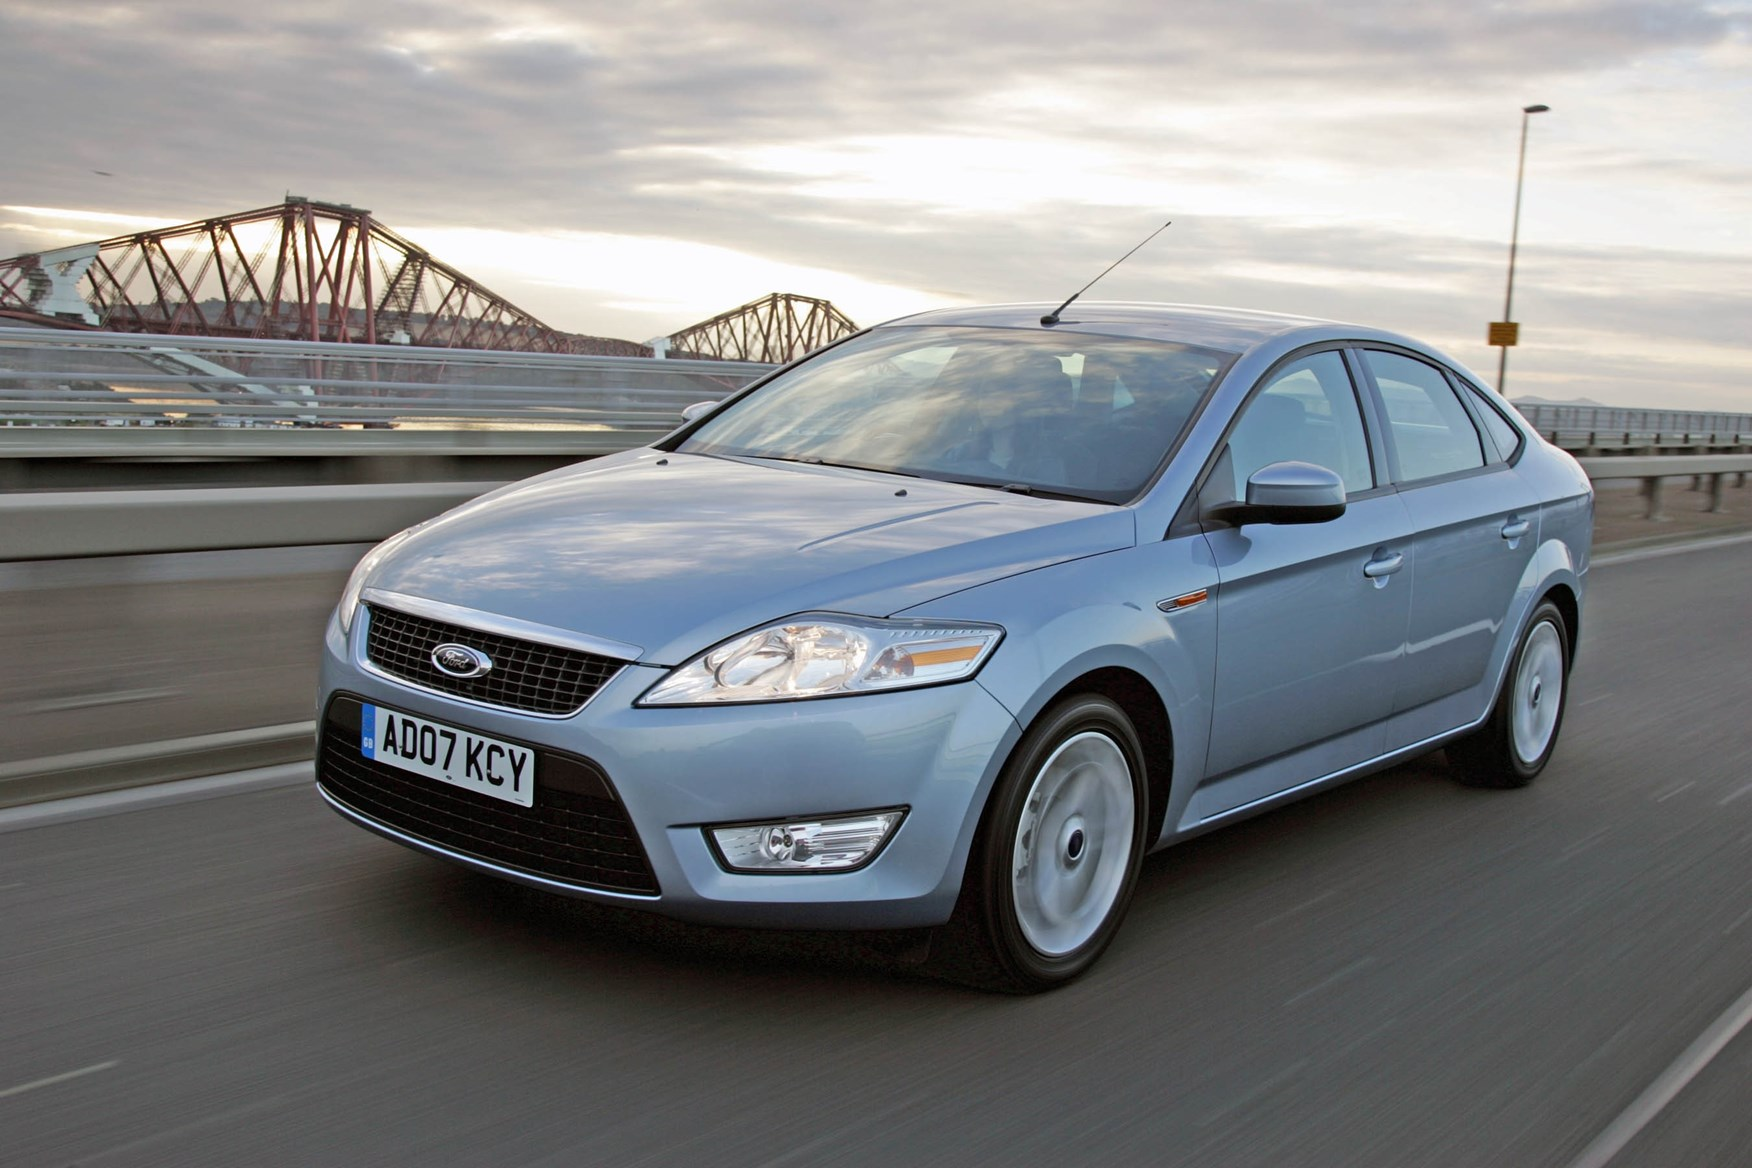 ford mondeo hatchback review 2007 2014 parkers. Black Bedroom Furniture Sets. Home Design Ideas